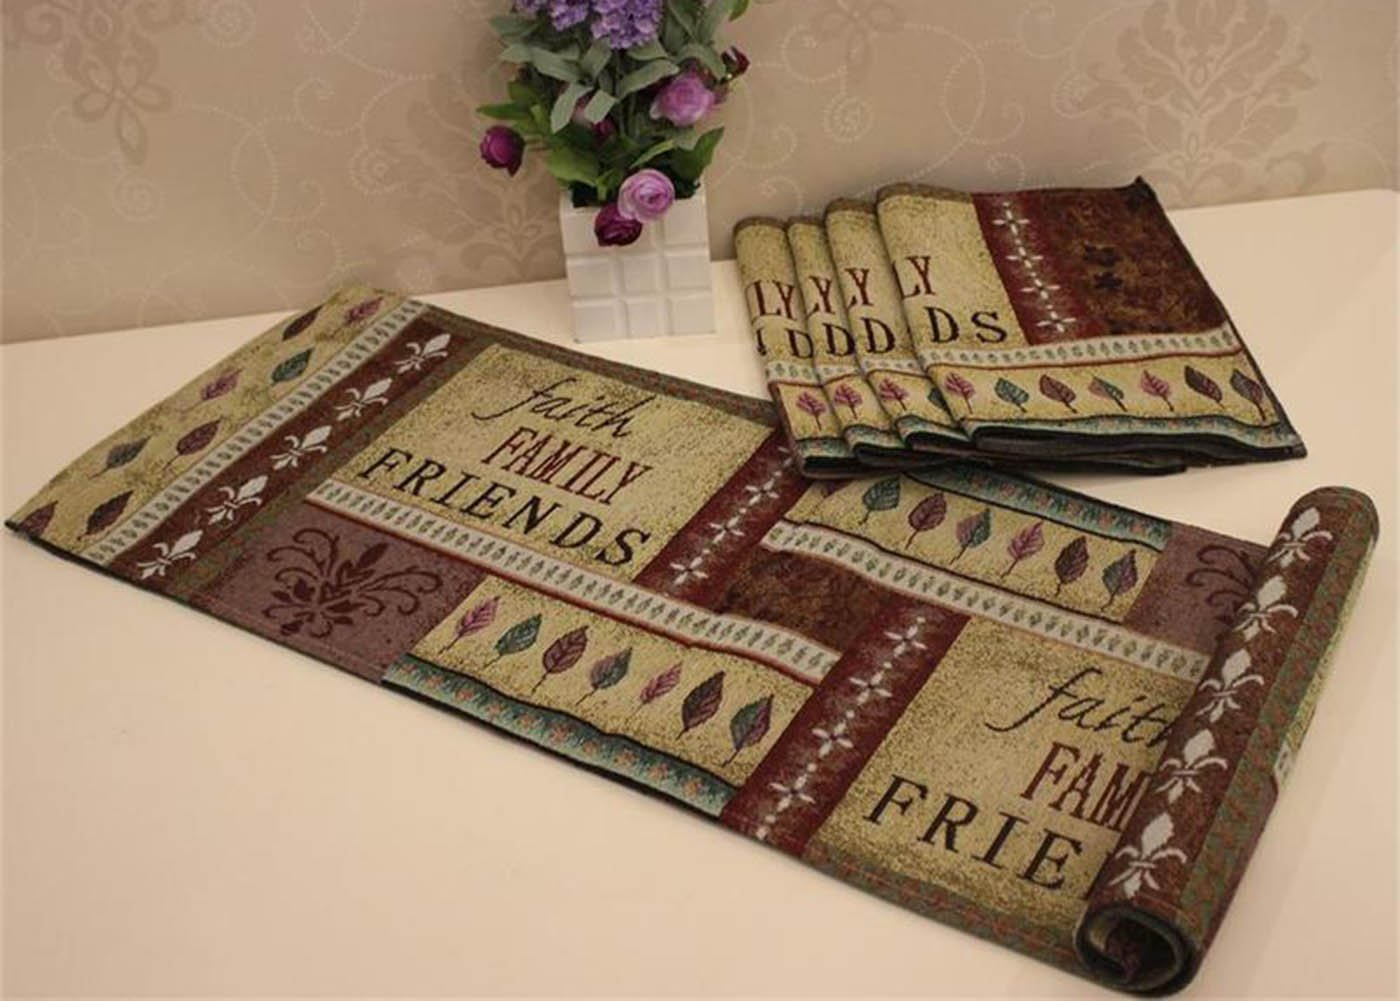 Americans Placemats & Table Runner - MeMoreCool Healthy Color Weaving Faith Words Family - Size Gifts